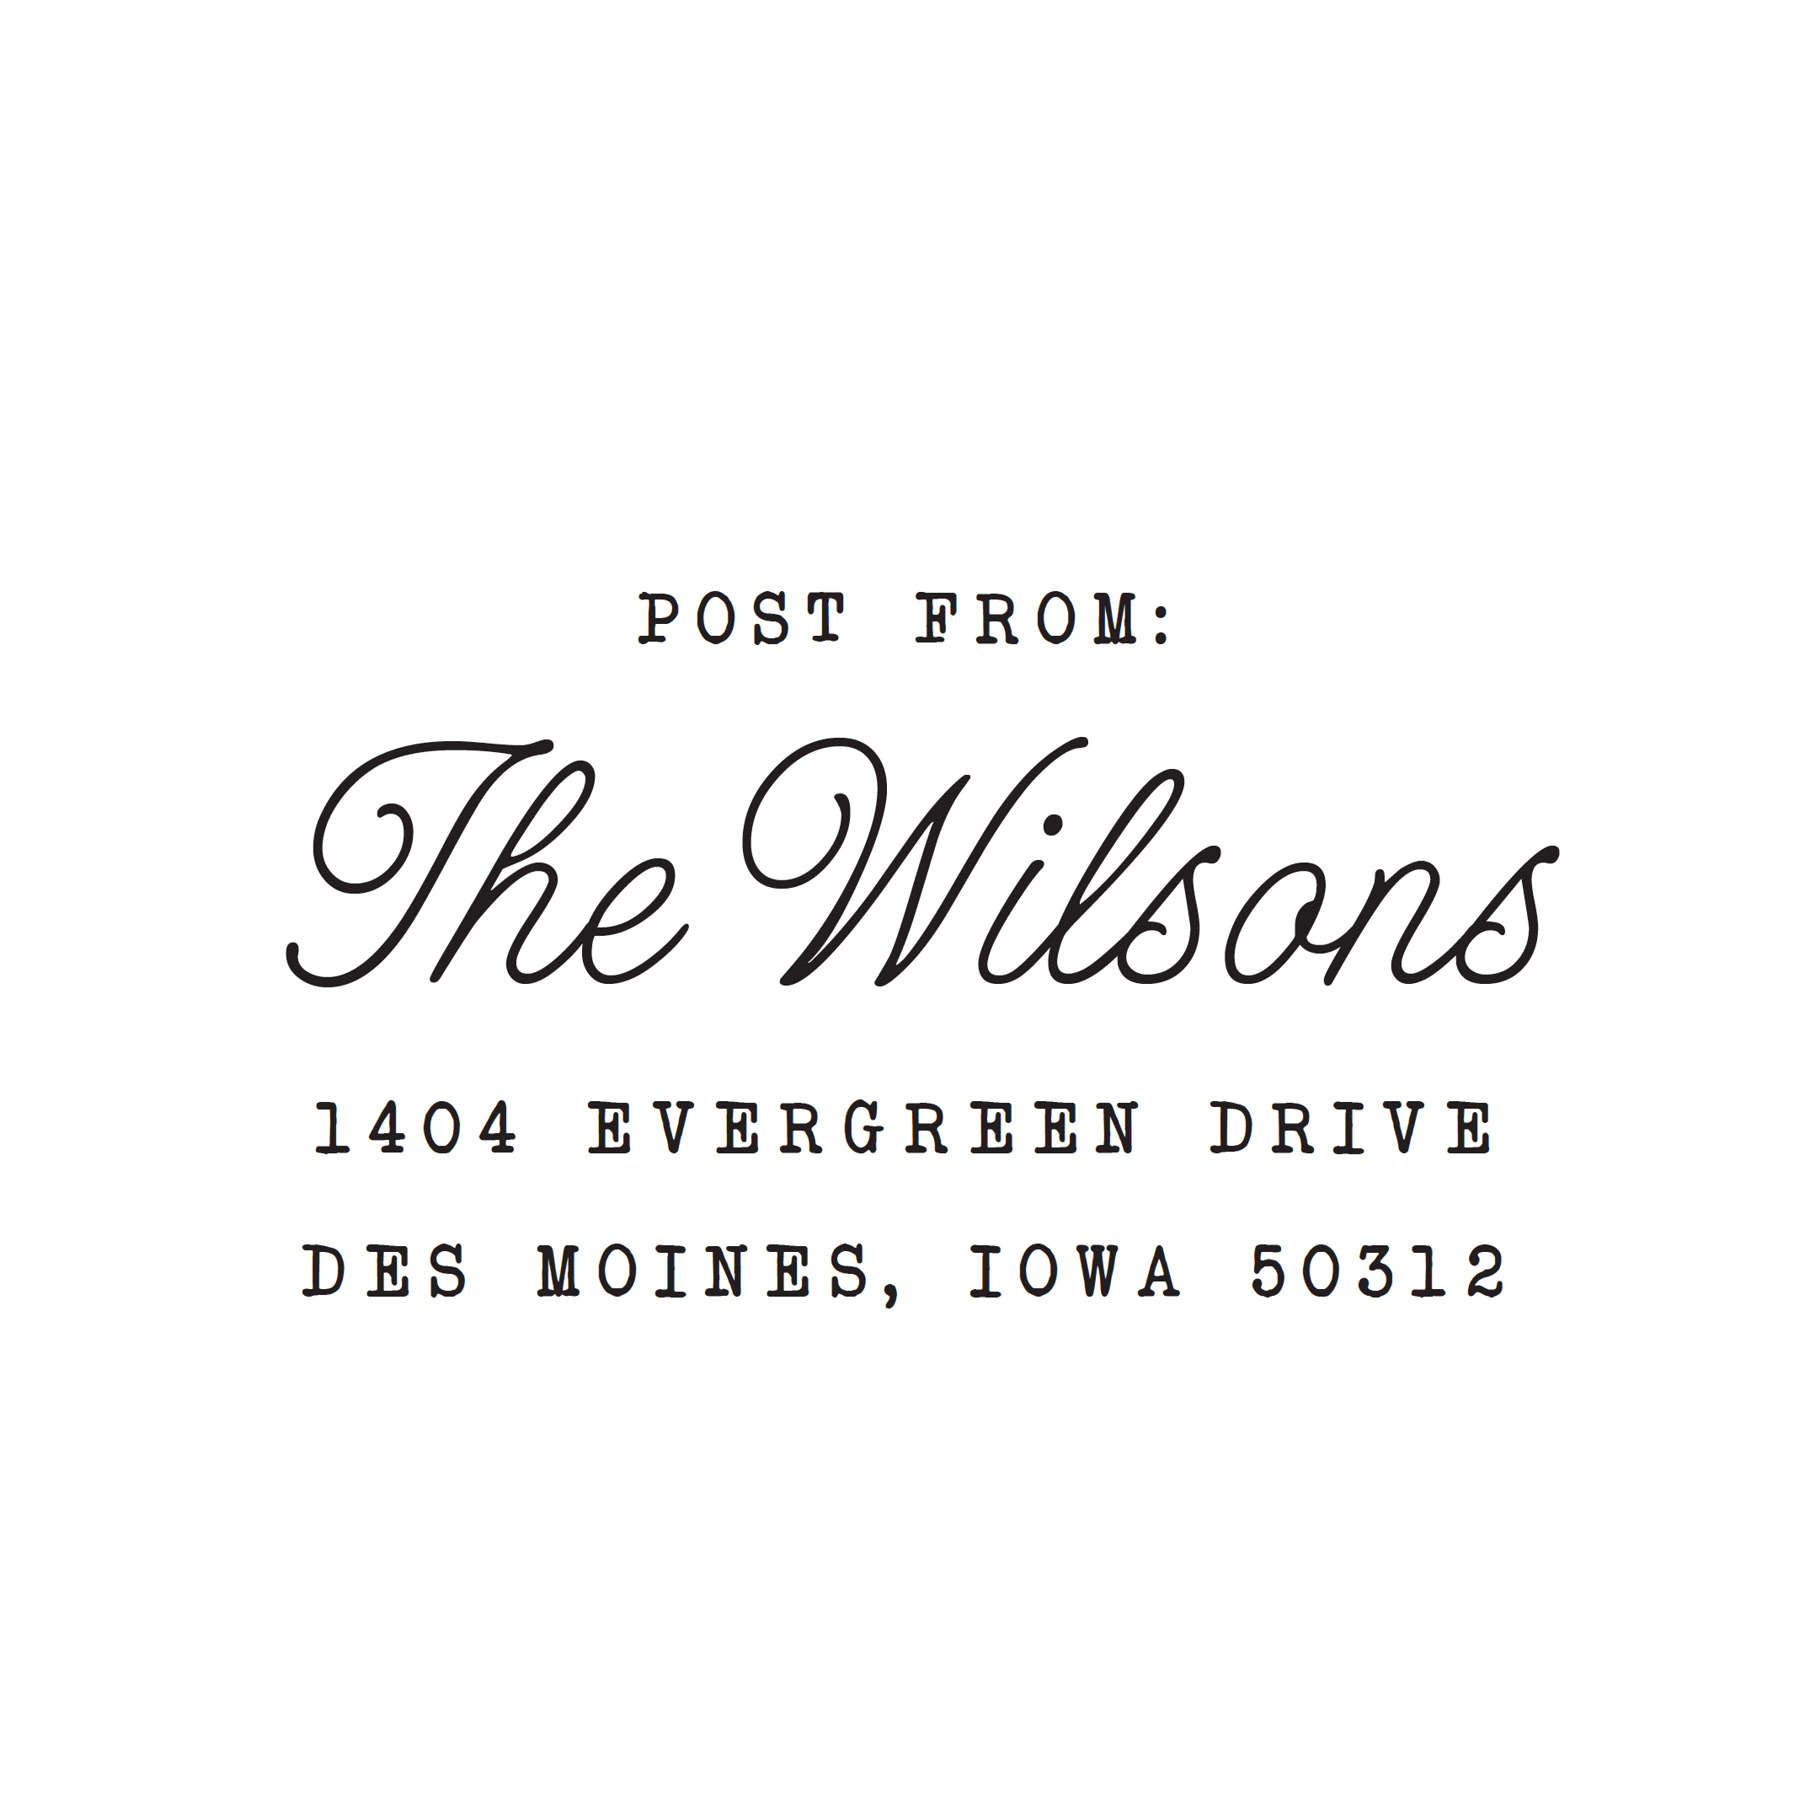 STAMP NAME: WILSONS